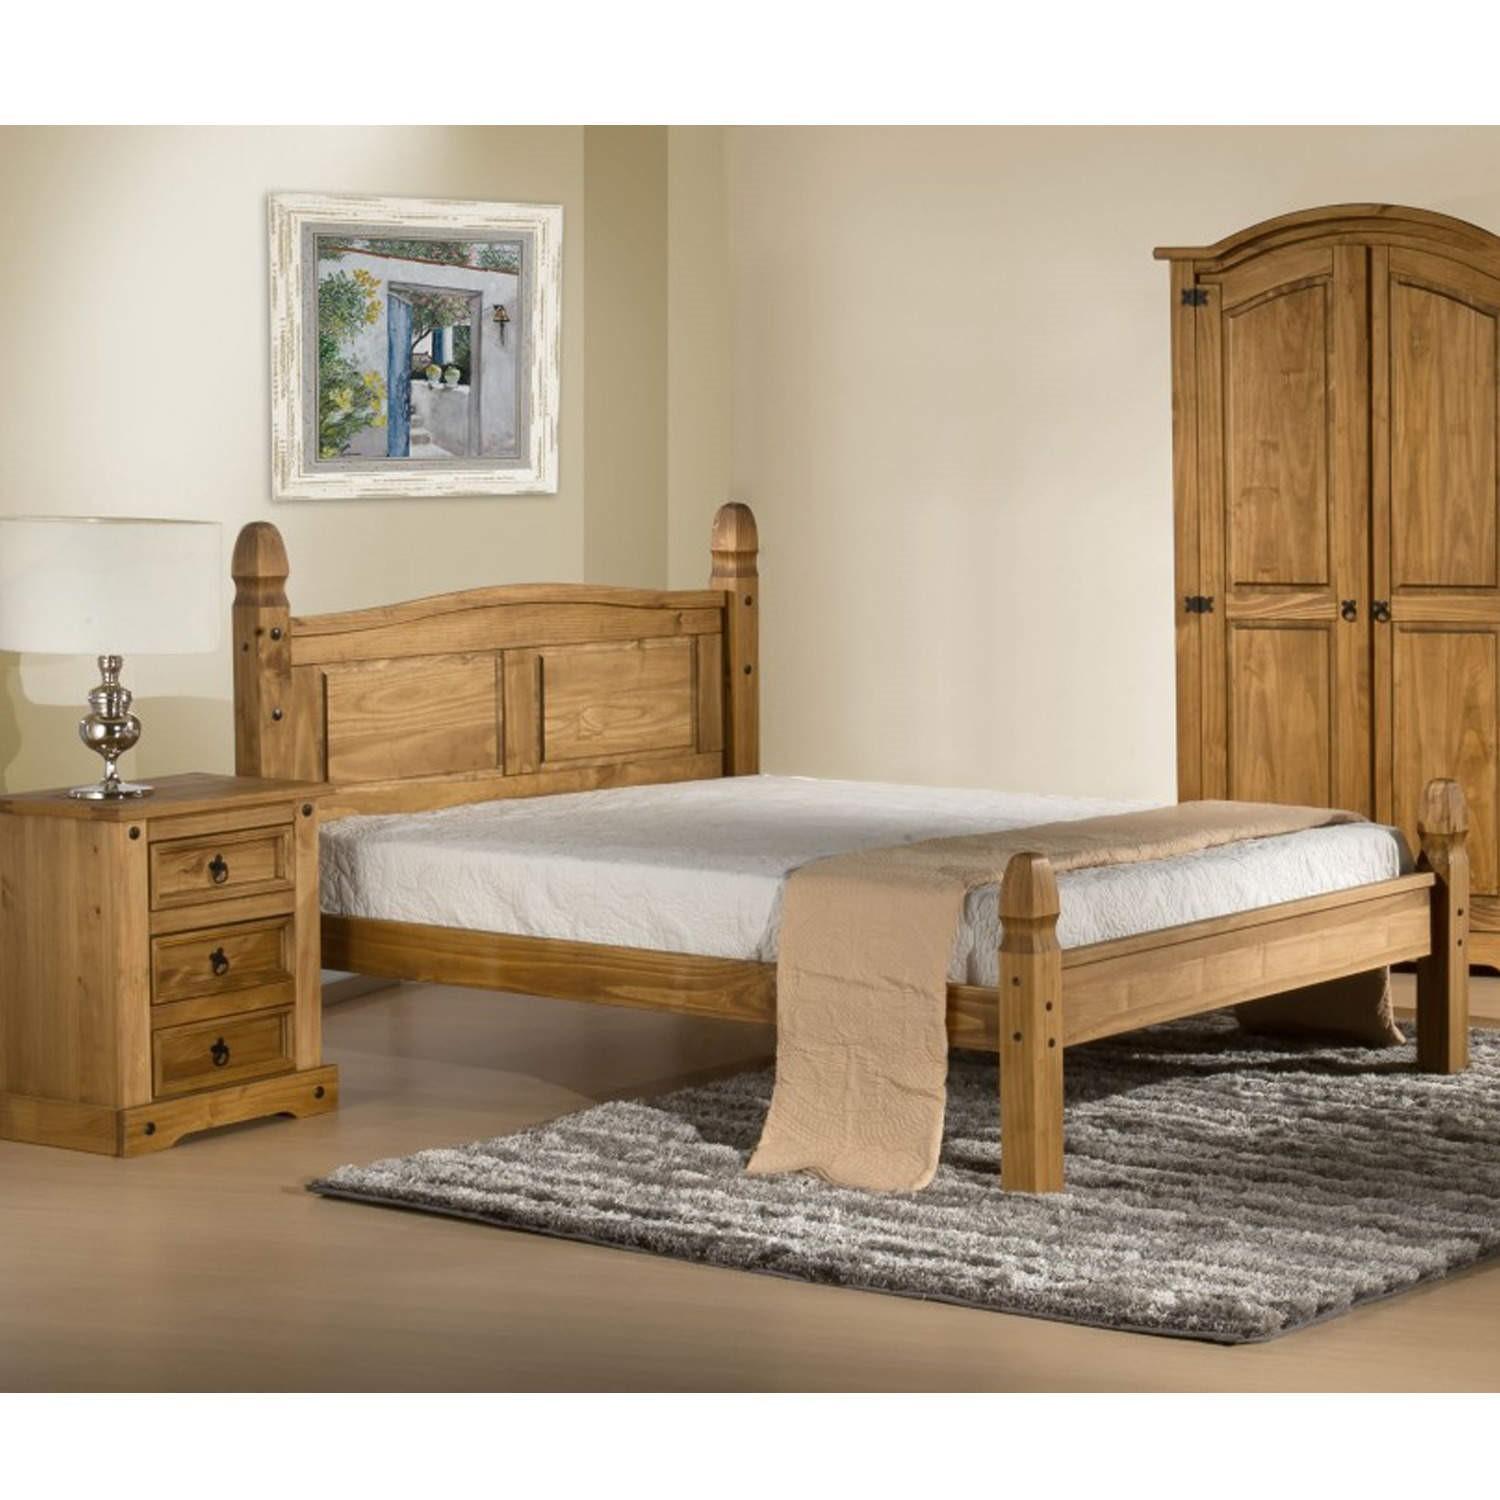 Corona Mexican 4ft6in Double Bed in Solid PineFurniture123